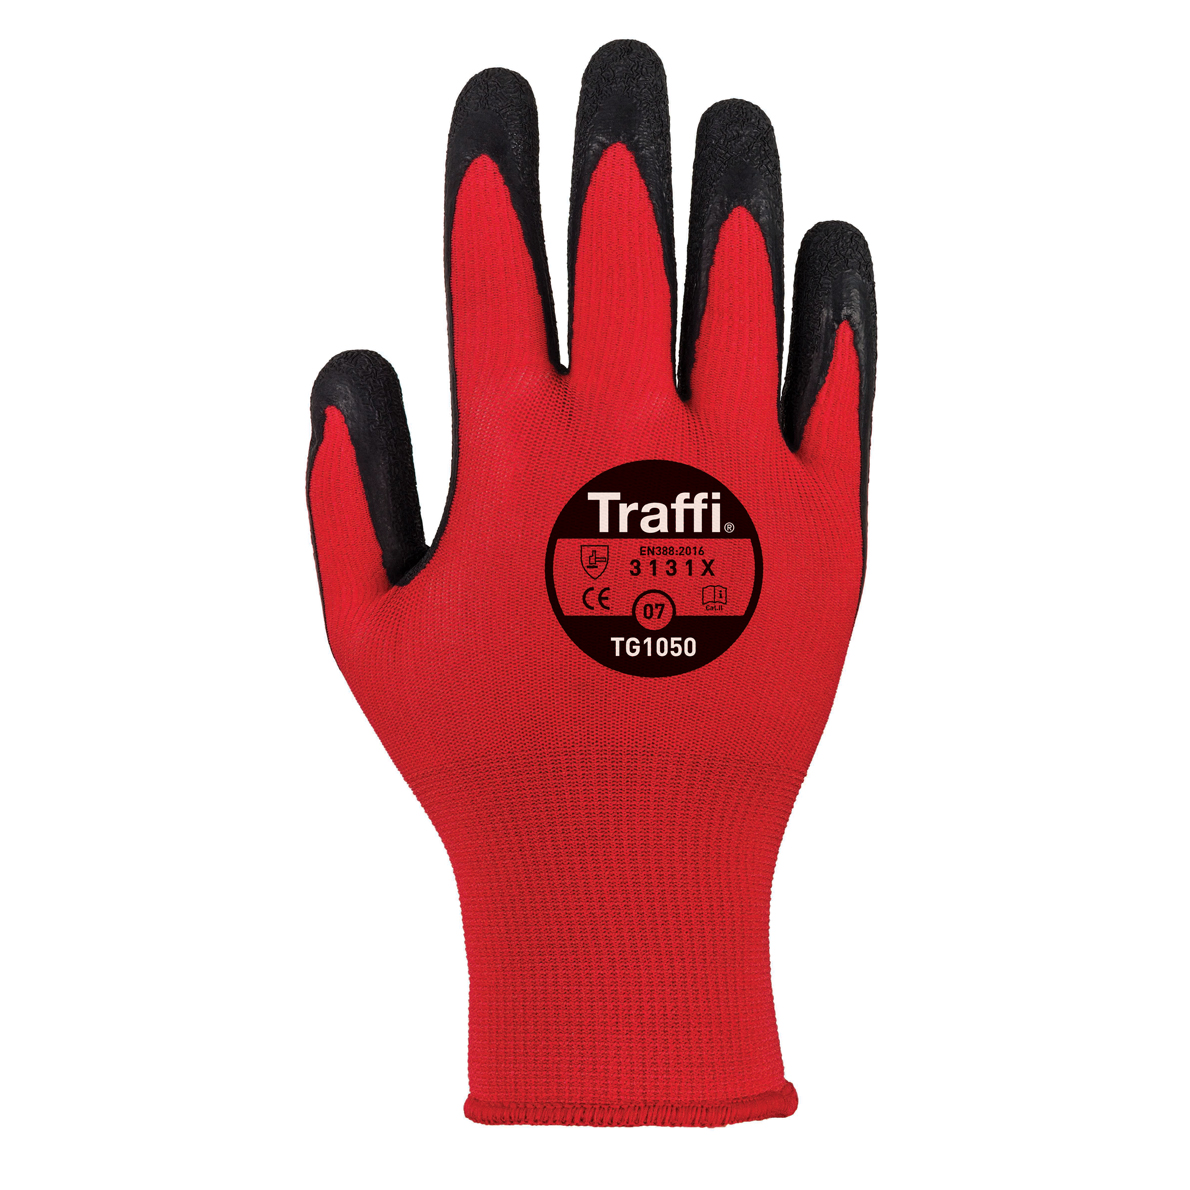 Traffiglove Tg1050 Centric 1 Cut Level 1 Red Safety Gloves Xl Size 10 (pack Of 10)